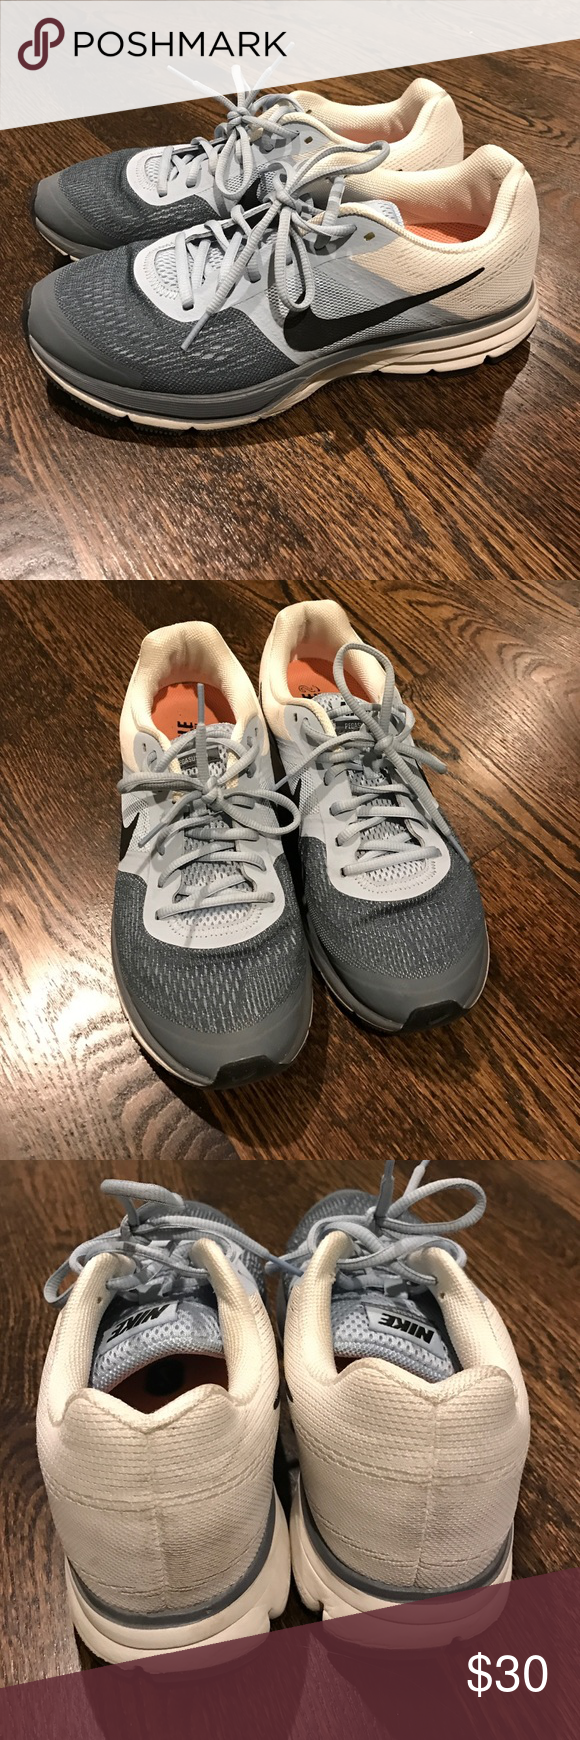 Nike Shoes Size 9.5 // Nike Zoom // BARELY WORN // great condition // Very minor scuffs which are washable // Blue, Grey & White multi-color design Nike Shoes Athletic Shoes